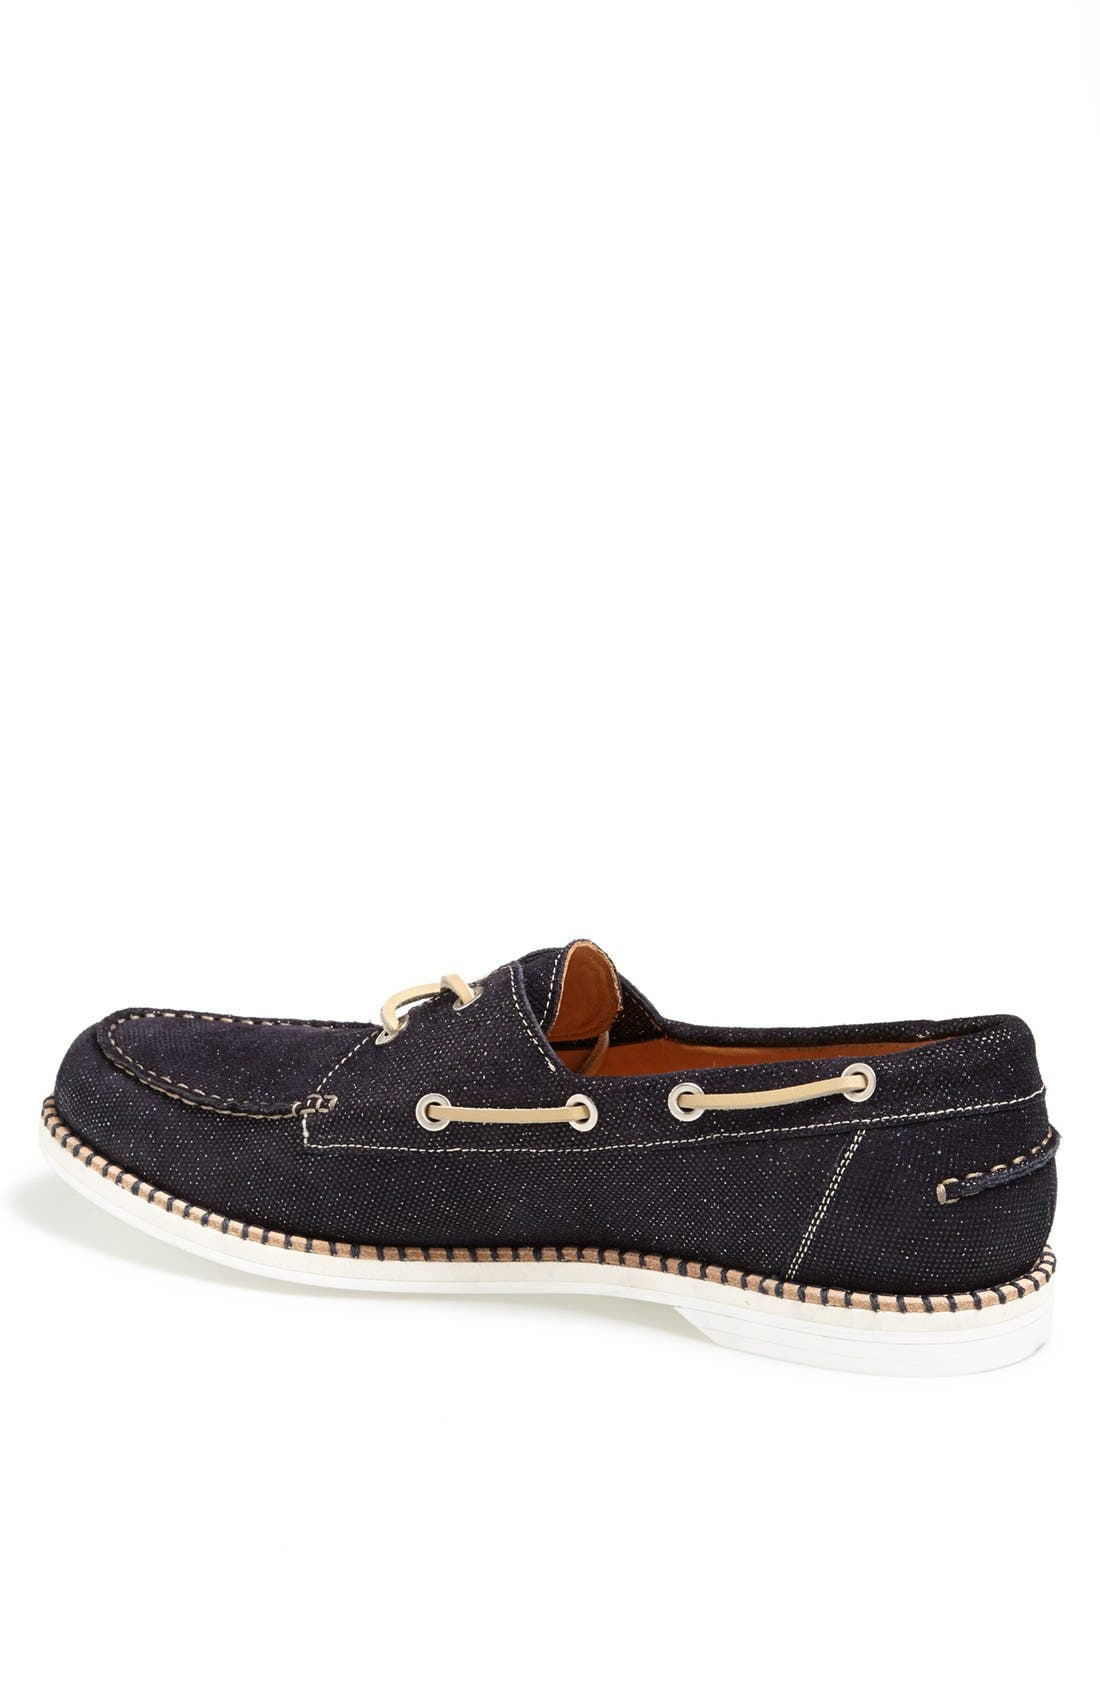 Alternate Image 2  - Jimmy Choo 'Danby' Glitter Boat Shoe